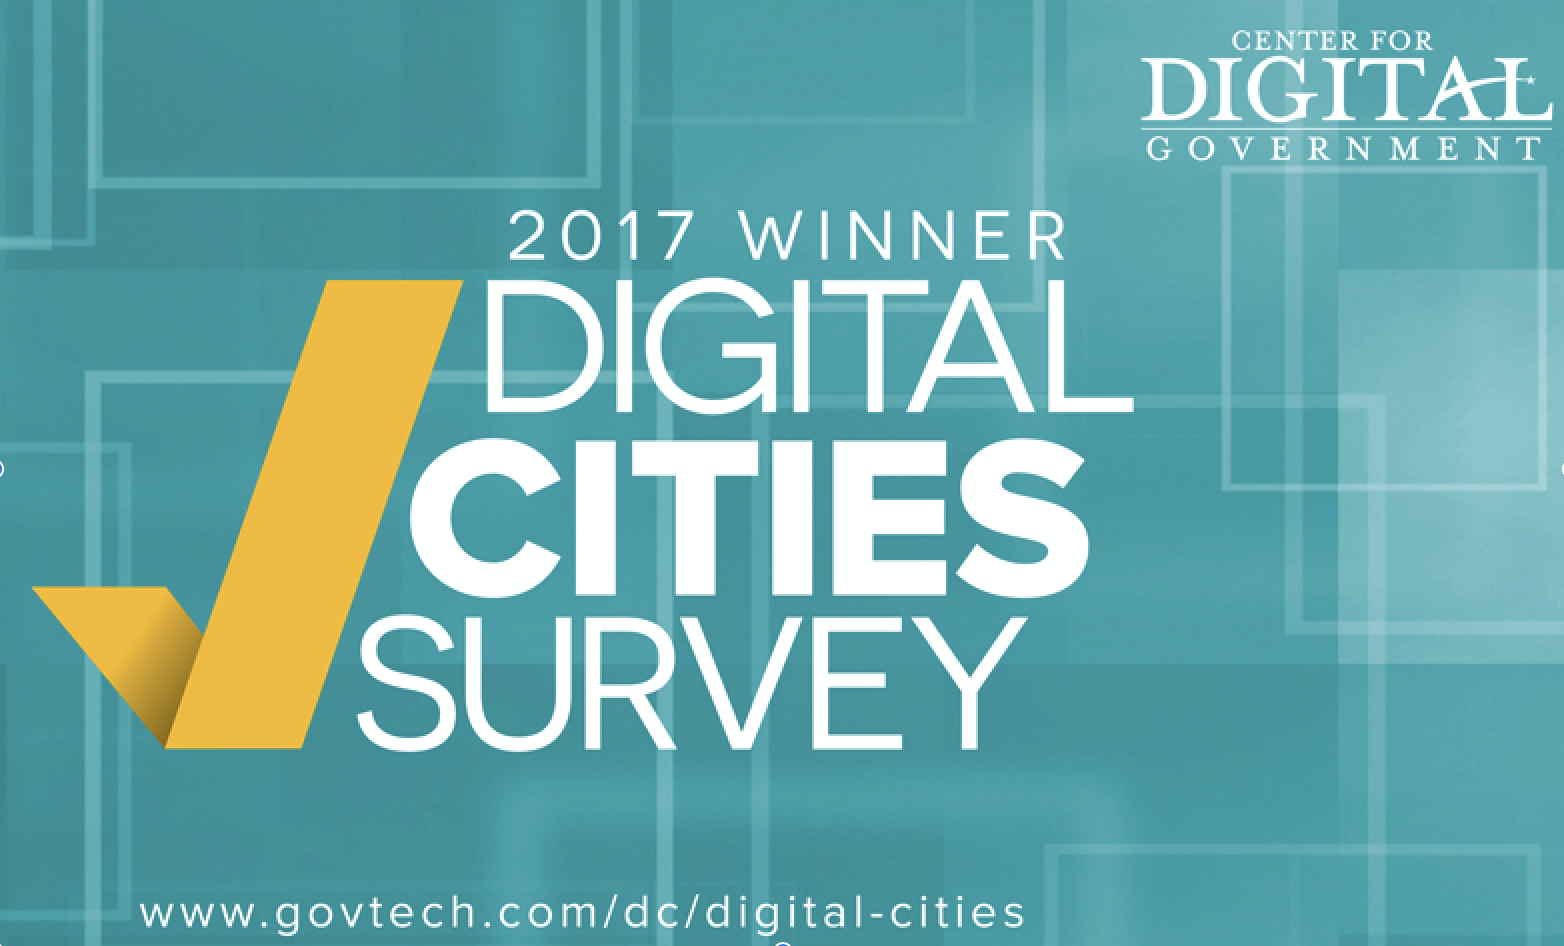 2017 Digital Cities Survey Logo